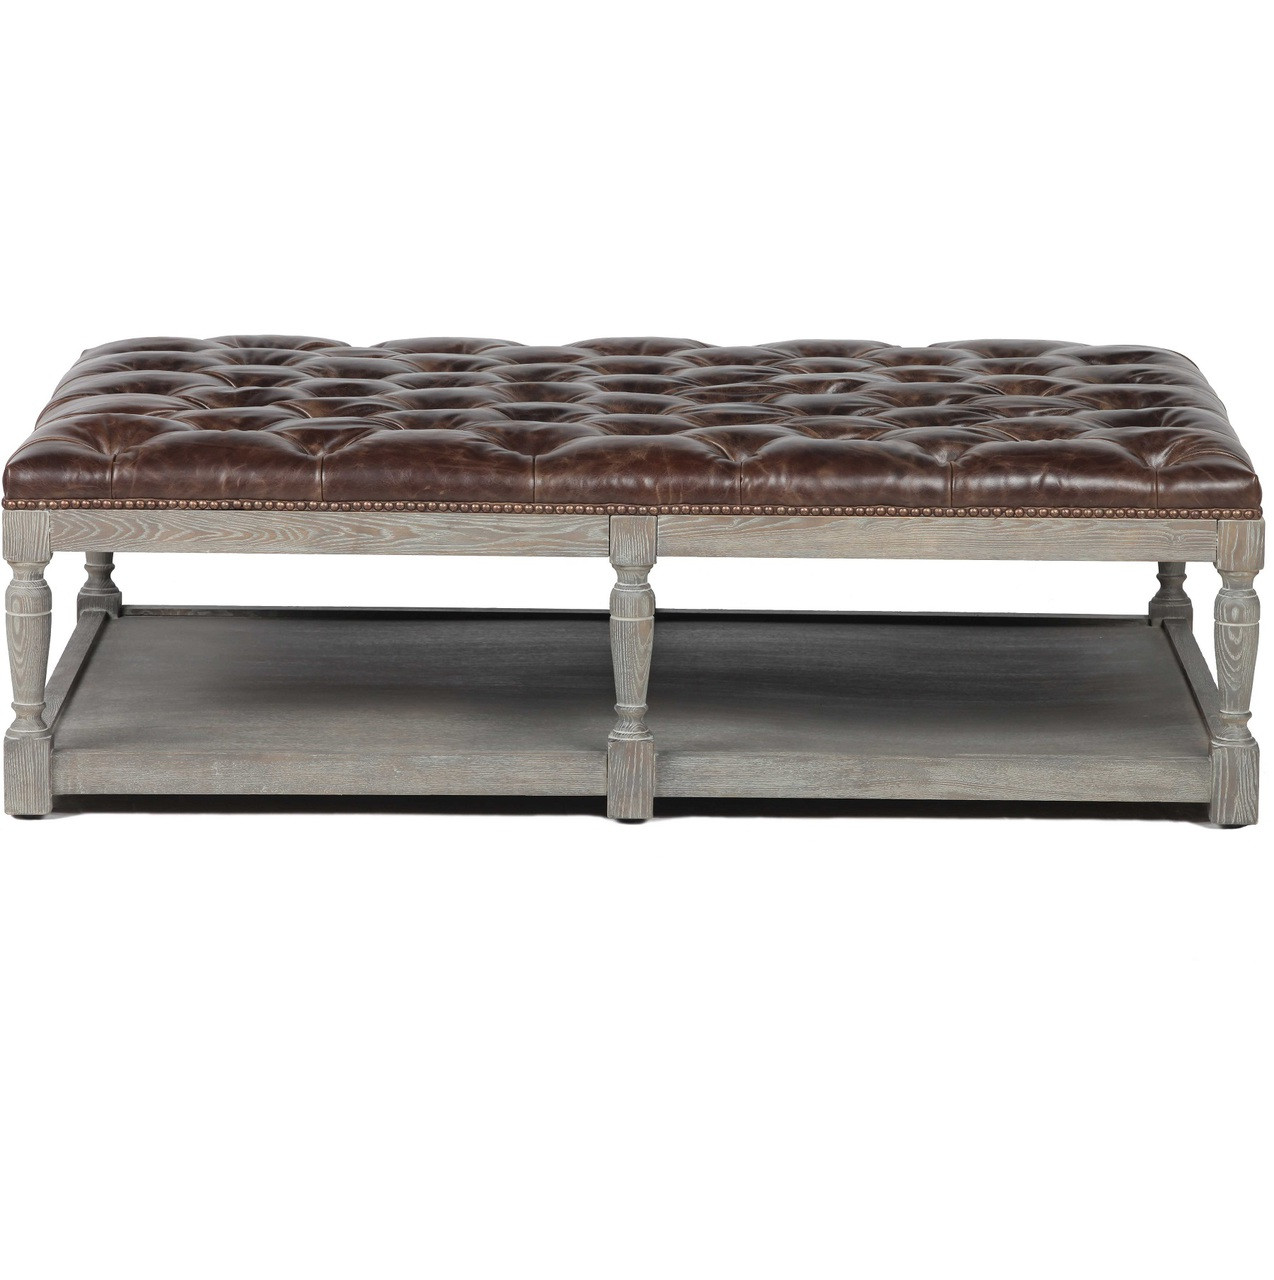 Thomas chesterfield tufted leather coffee ottoman zin home thomas chesterfield tufted leather coffee ottoman geotapseo Gallery